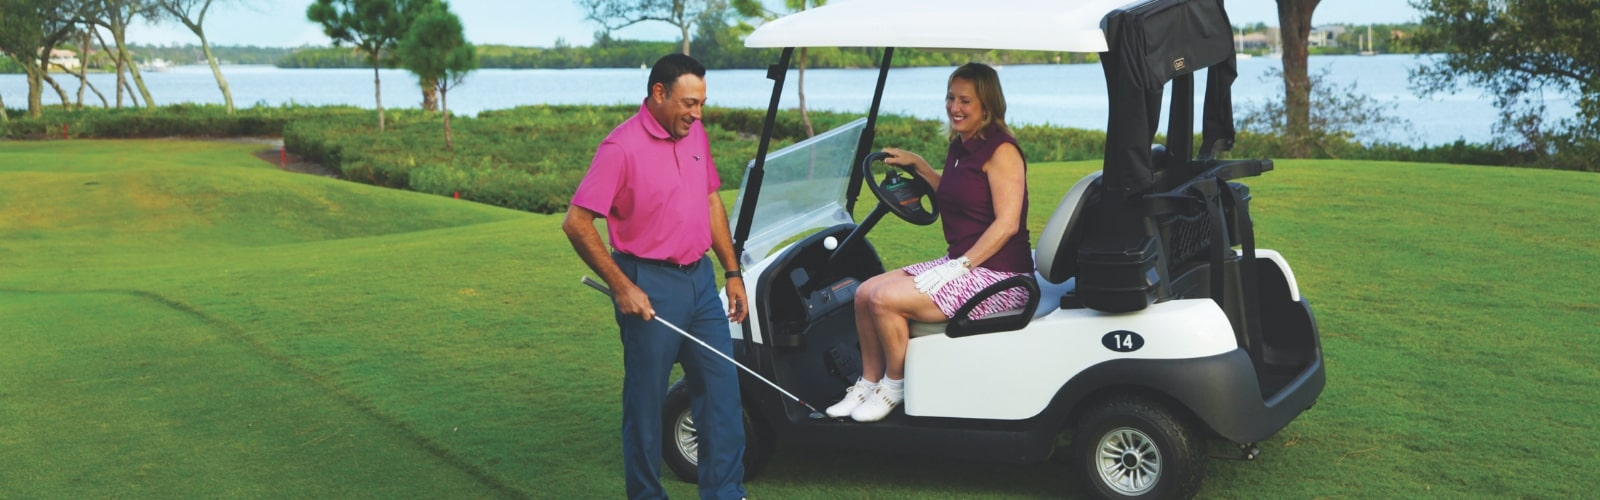 Golf Tips from Harbour Ridge's Mike Malizia